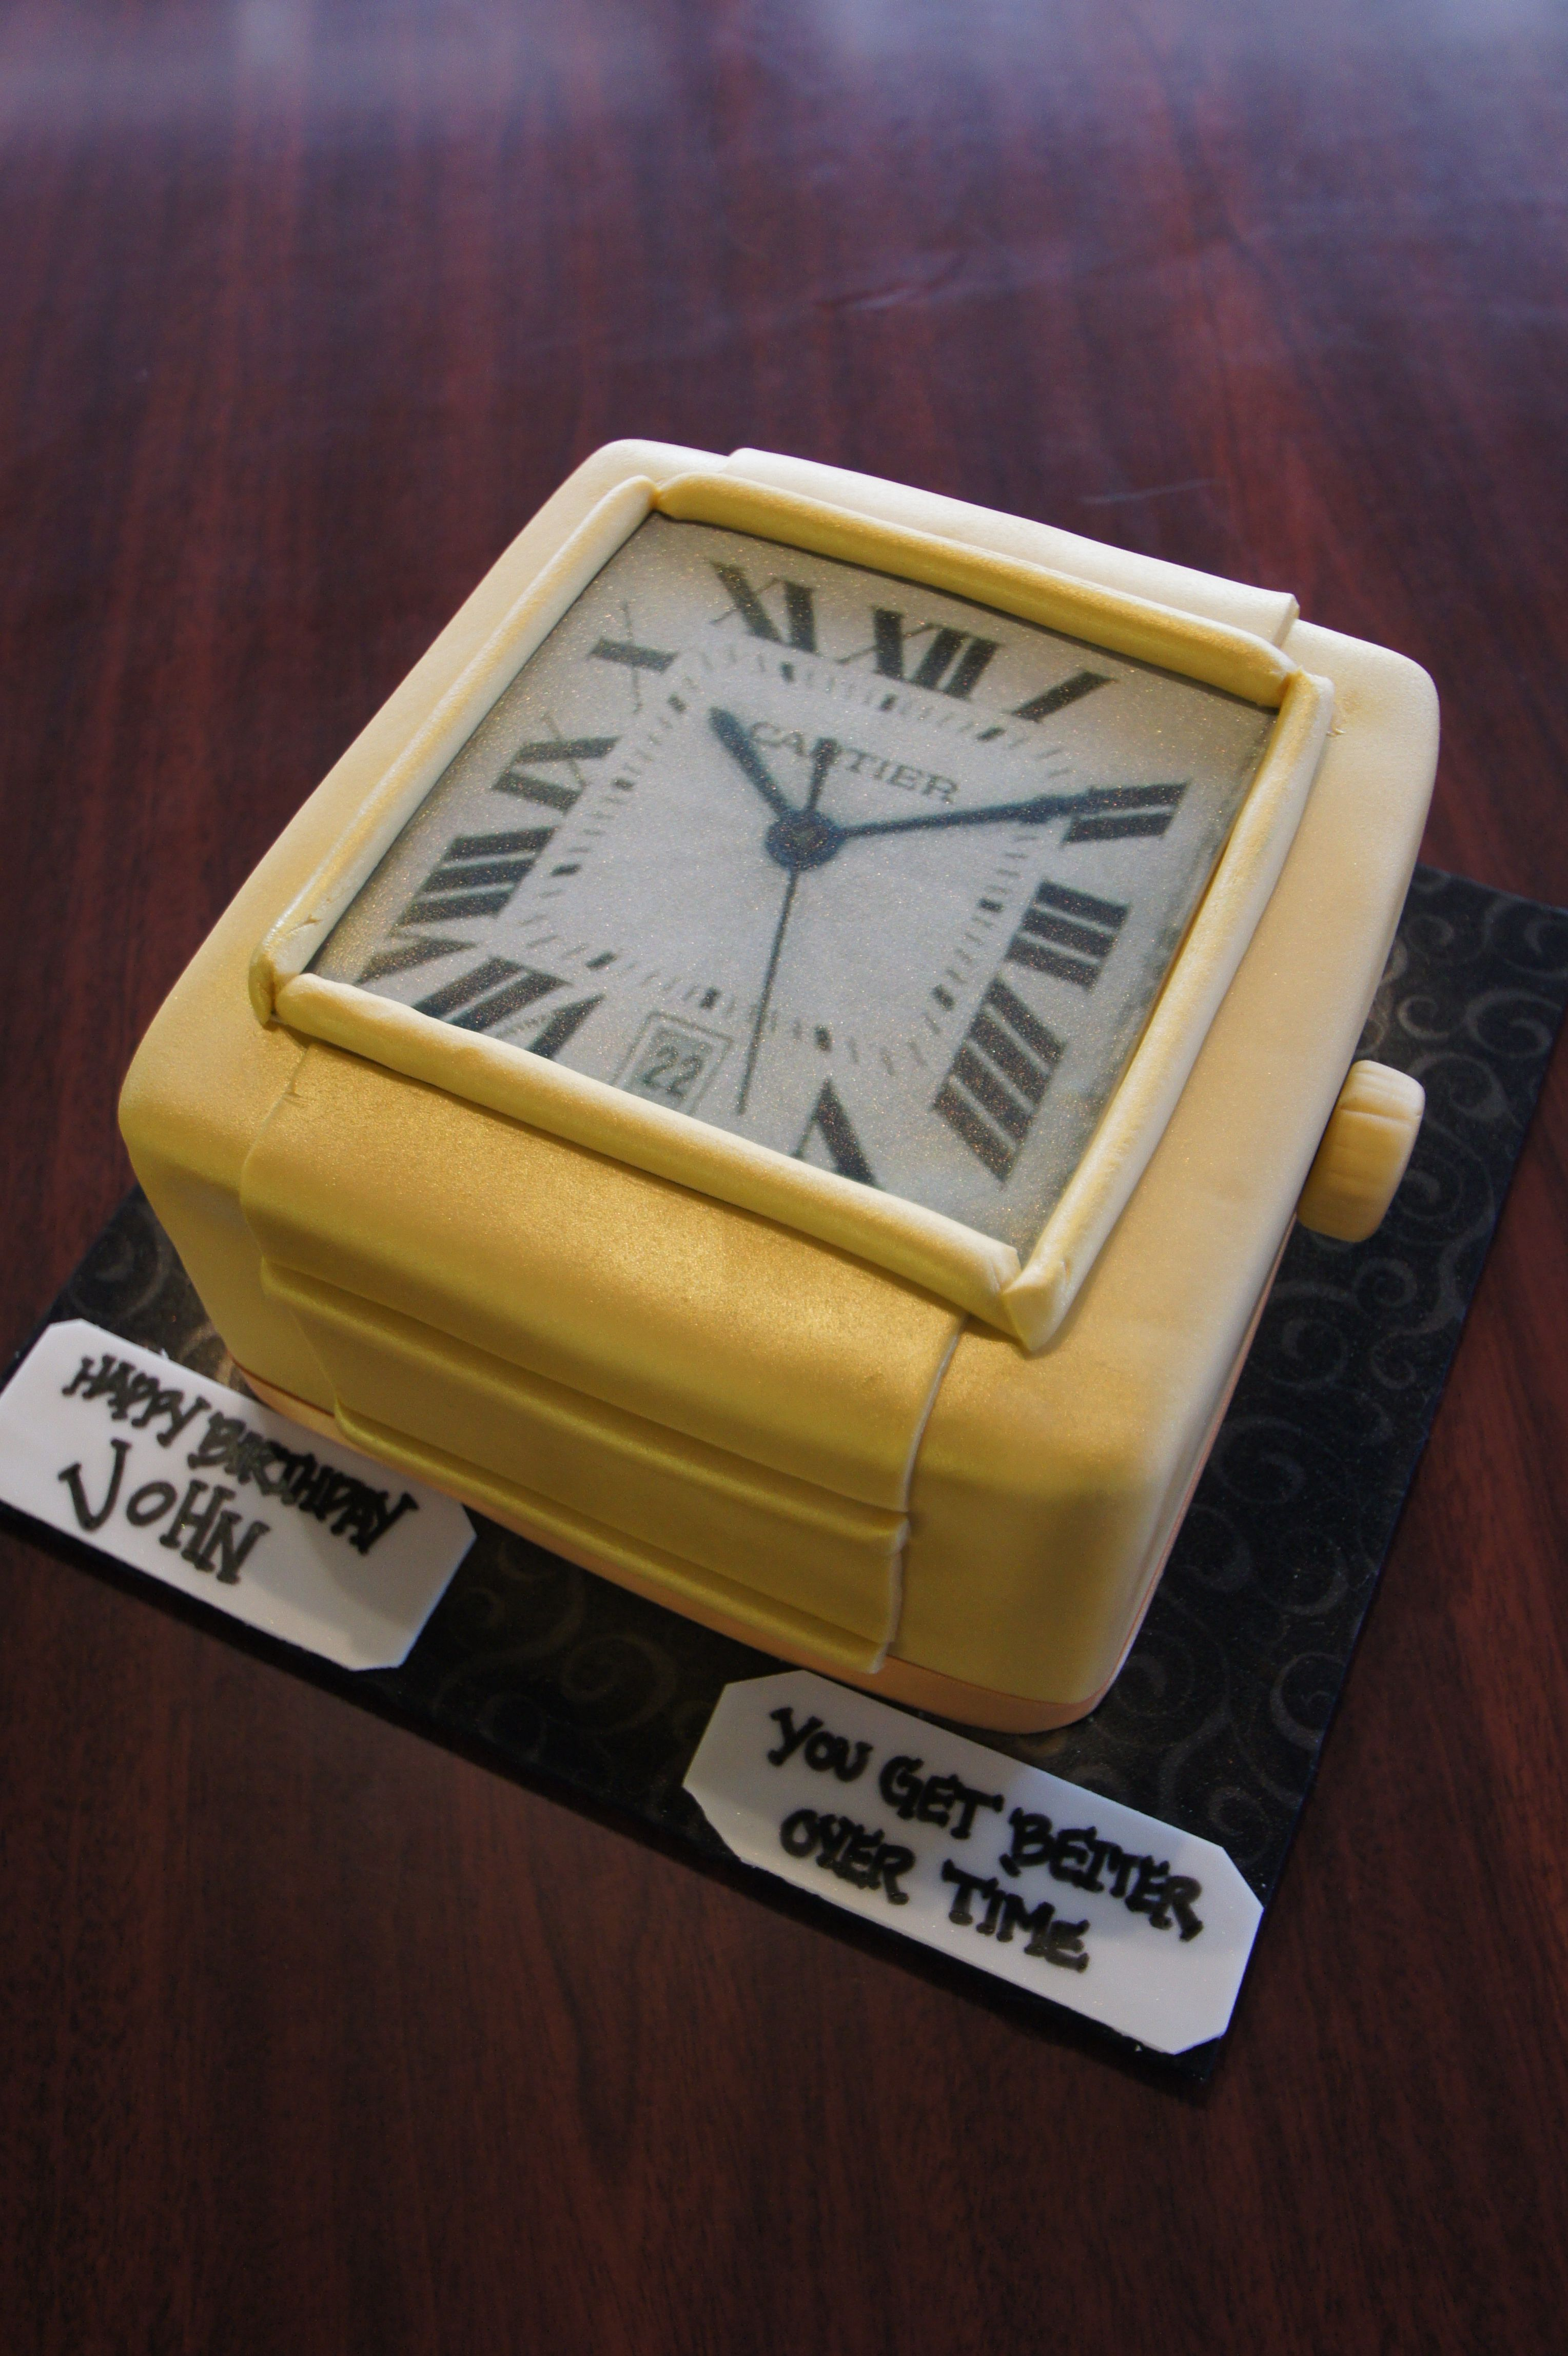 Square Cartier Watch Face Birthday Cake Adult Birthday Cakes